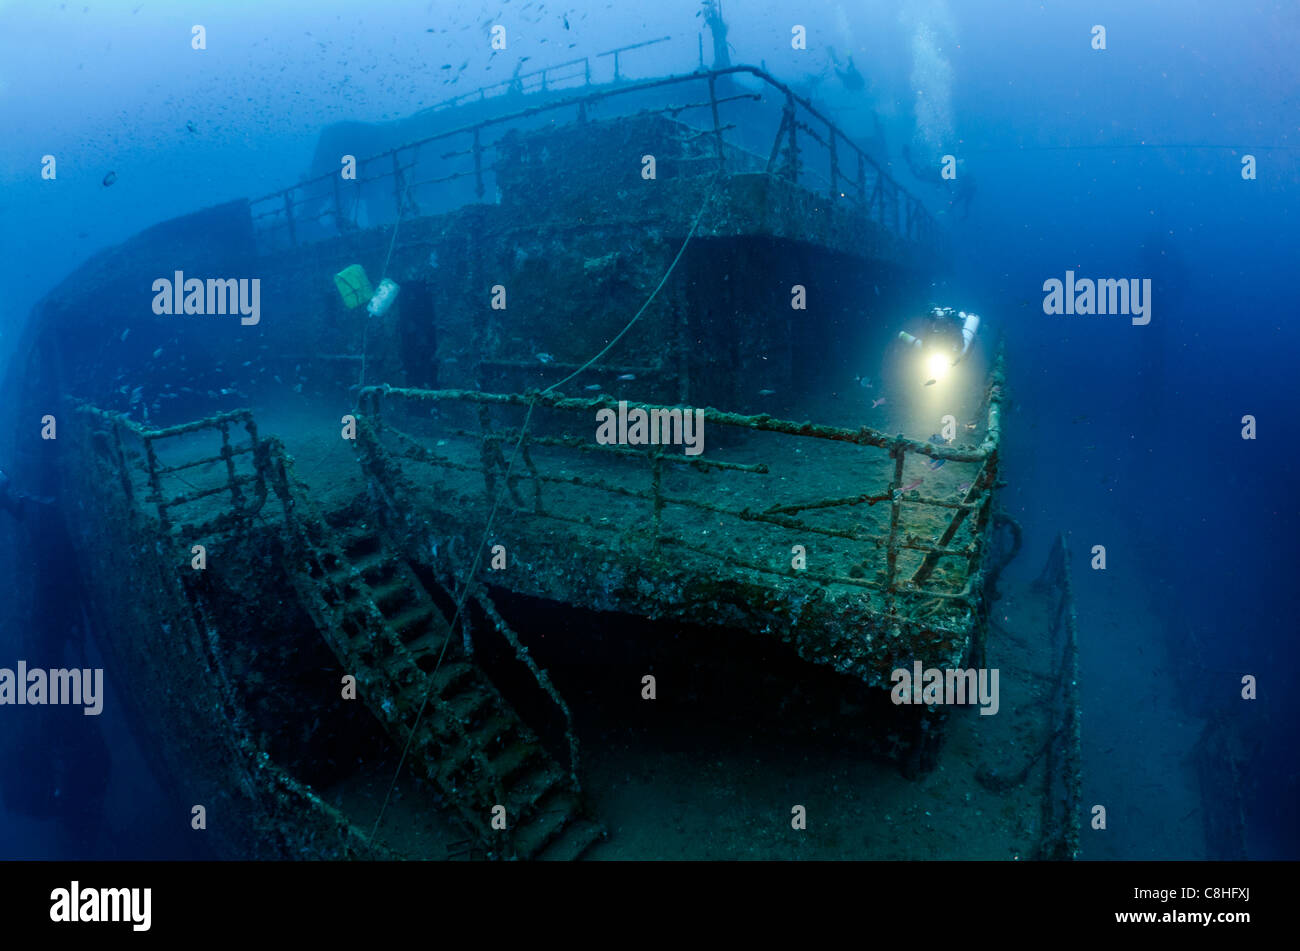 Wreck of haven amoco milford haven tanker arenzano liguria italy stock photo 39723674 alamy - Tech dive arenzano ...